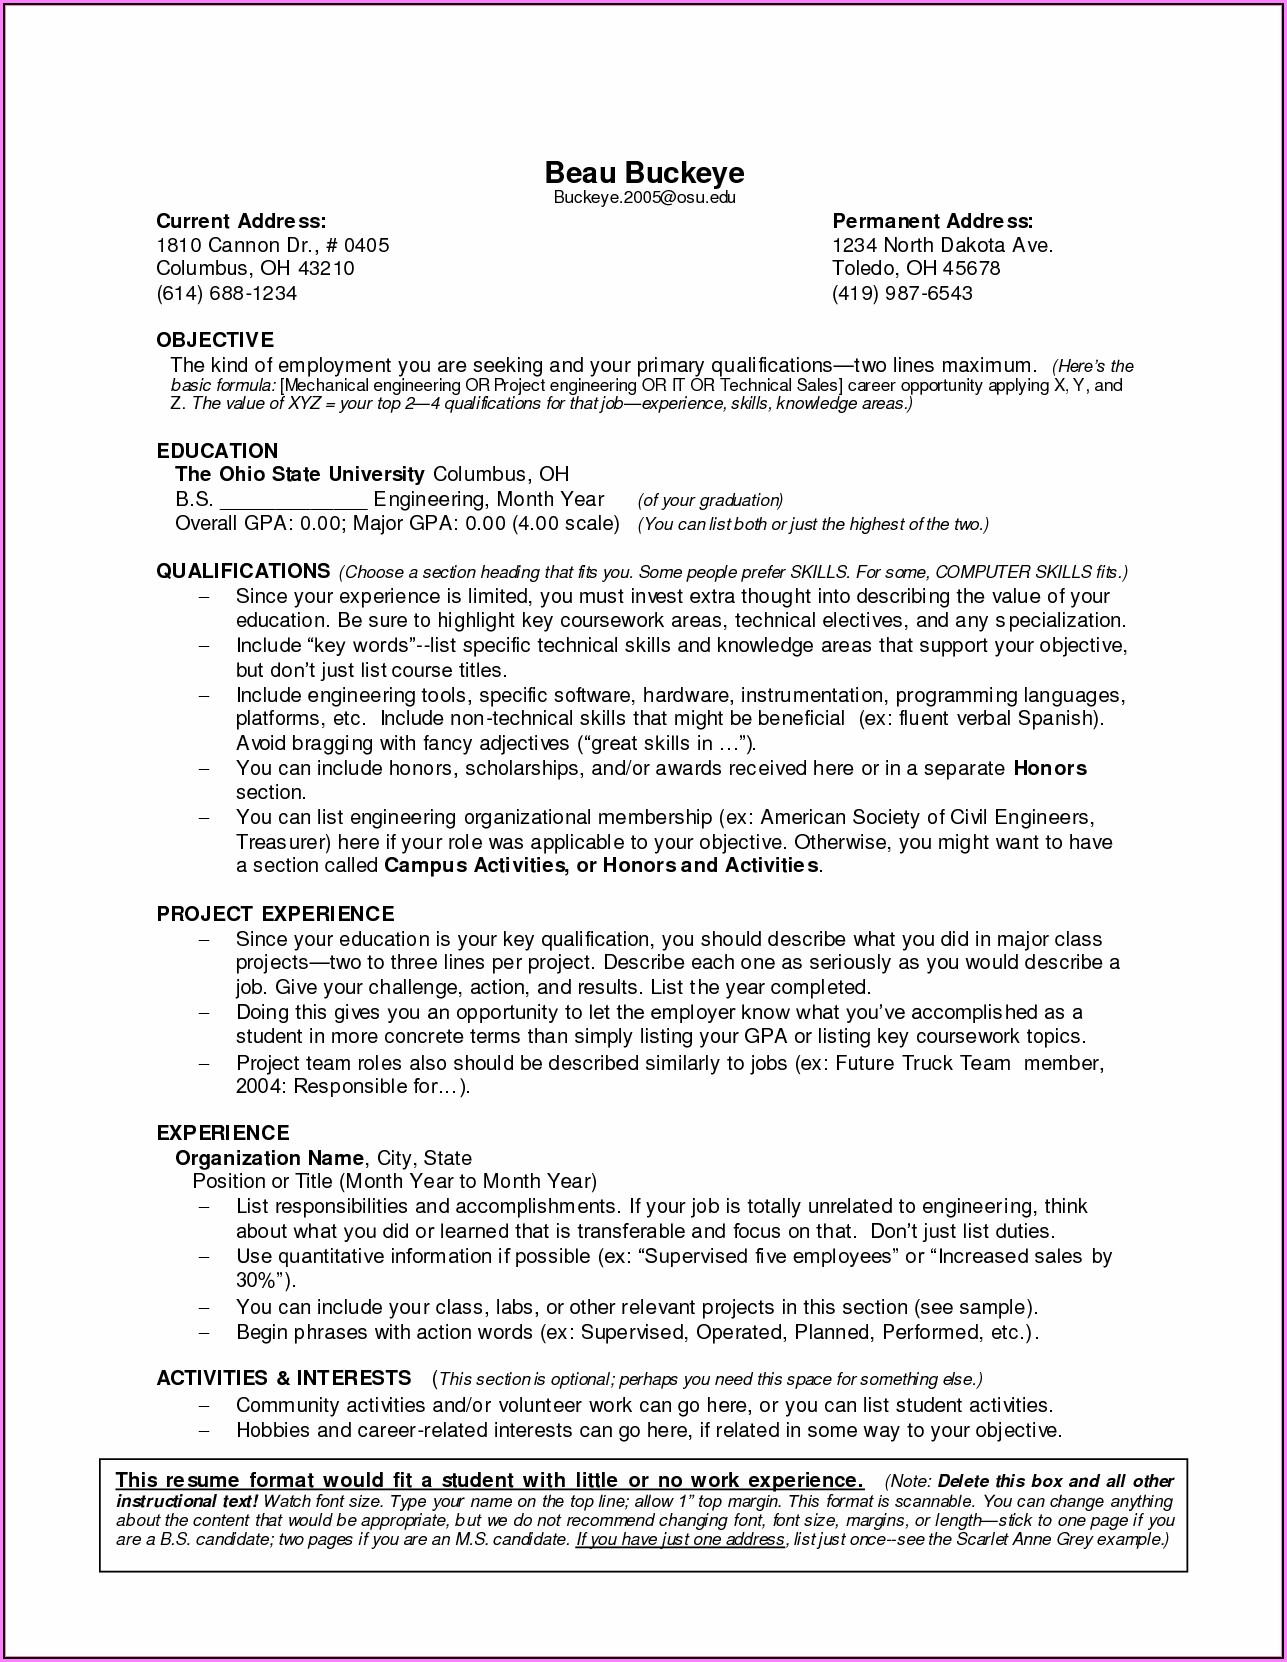 Resume Builder For Someone With No Work Experience